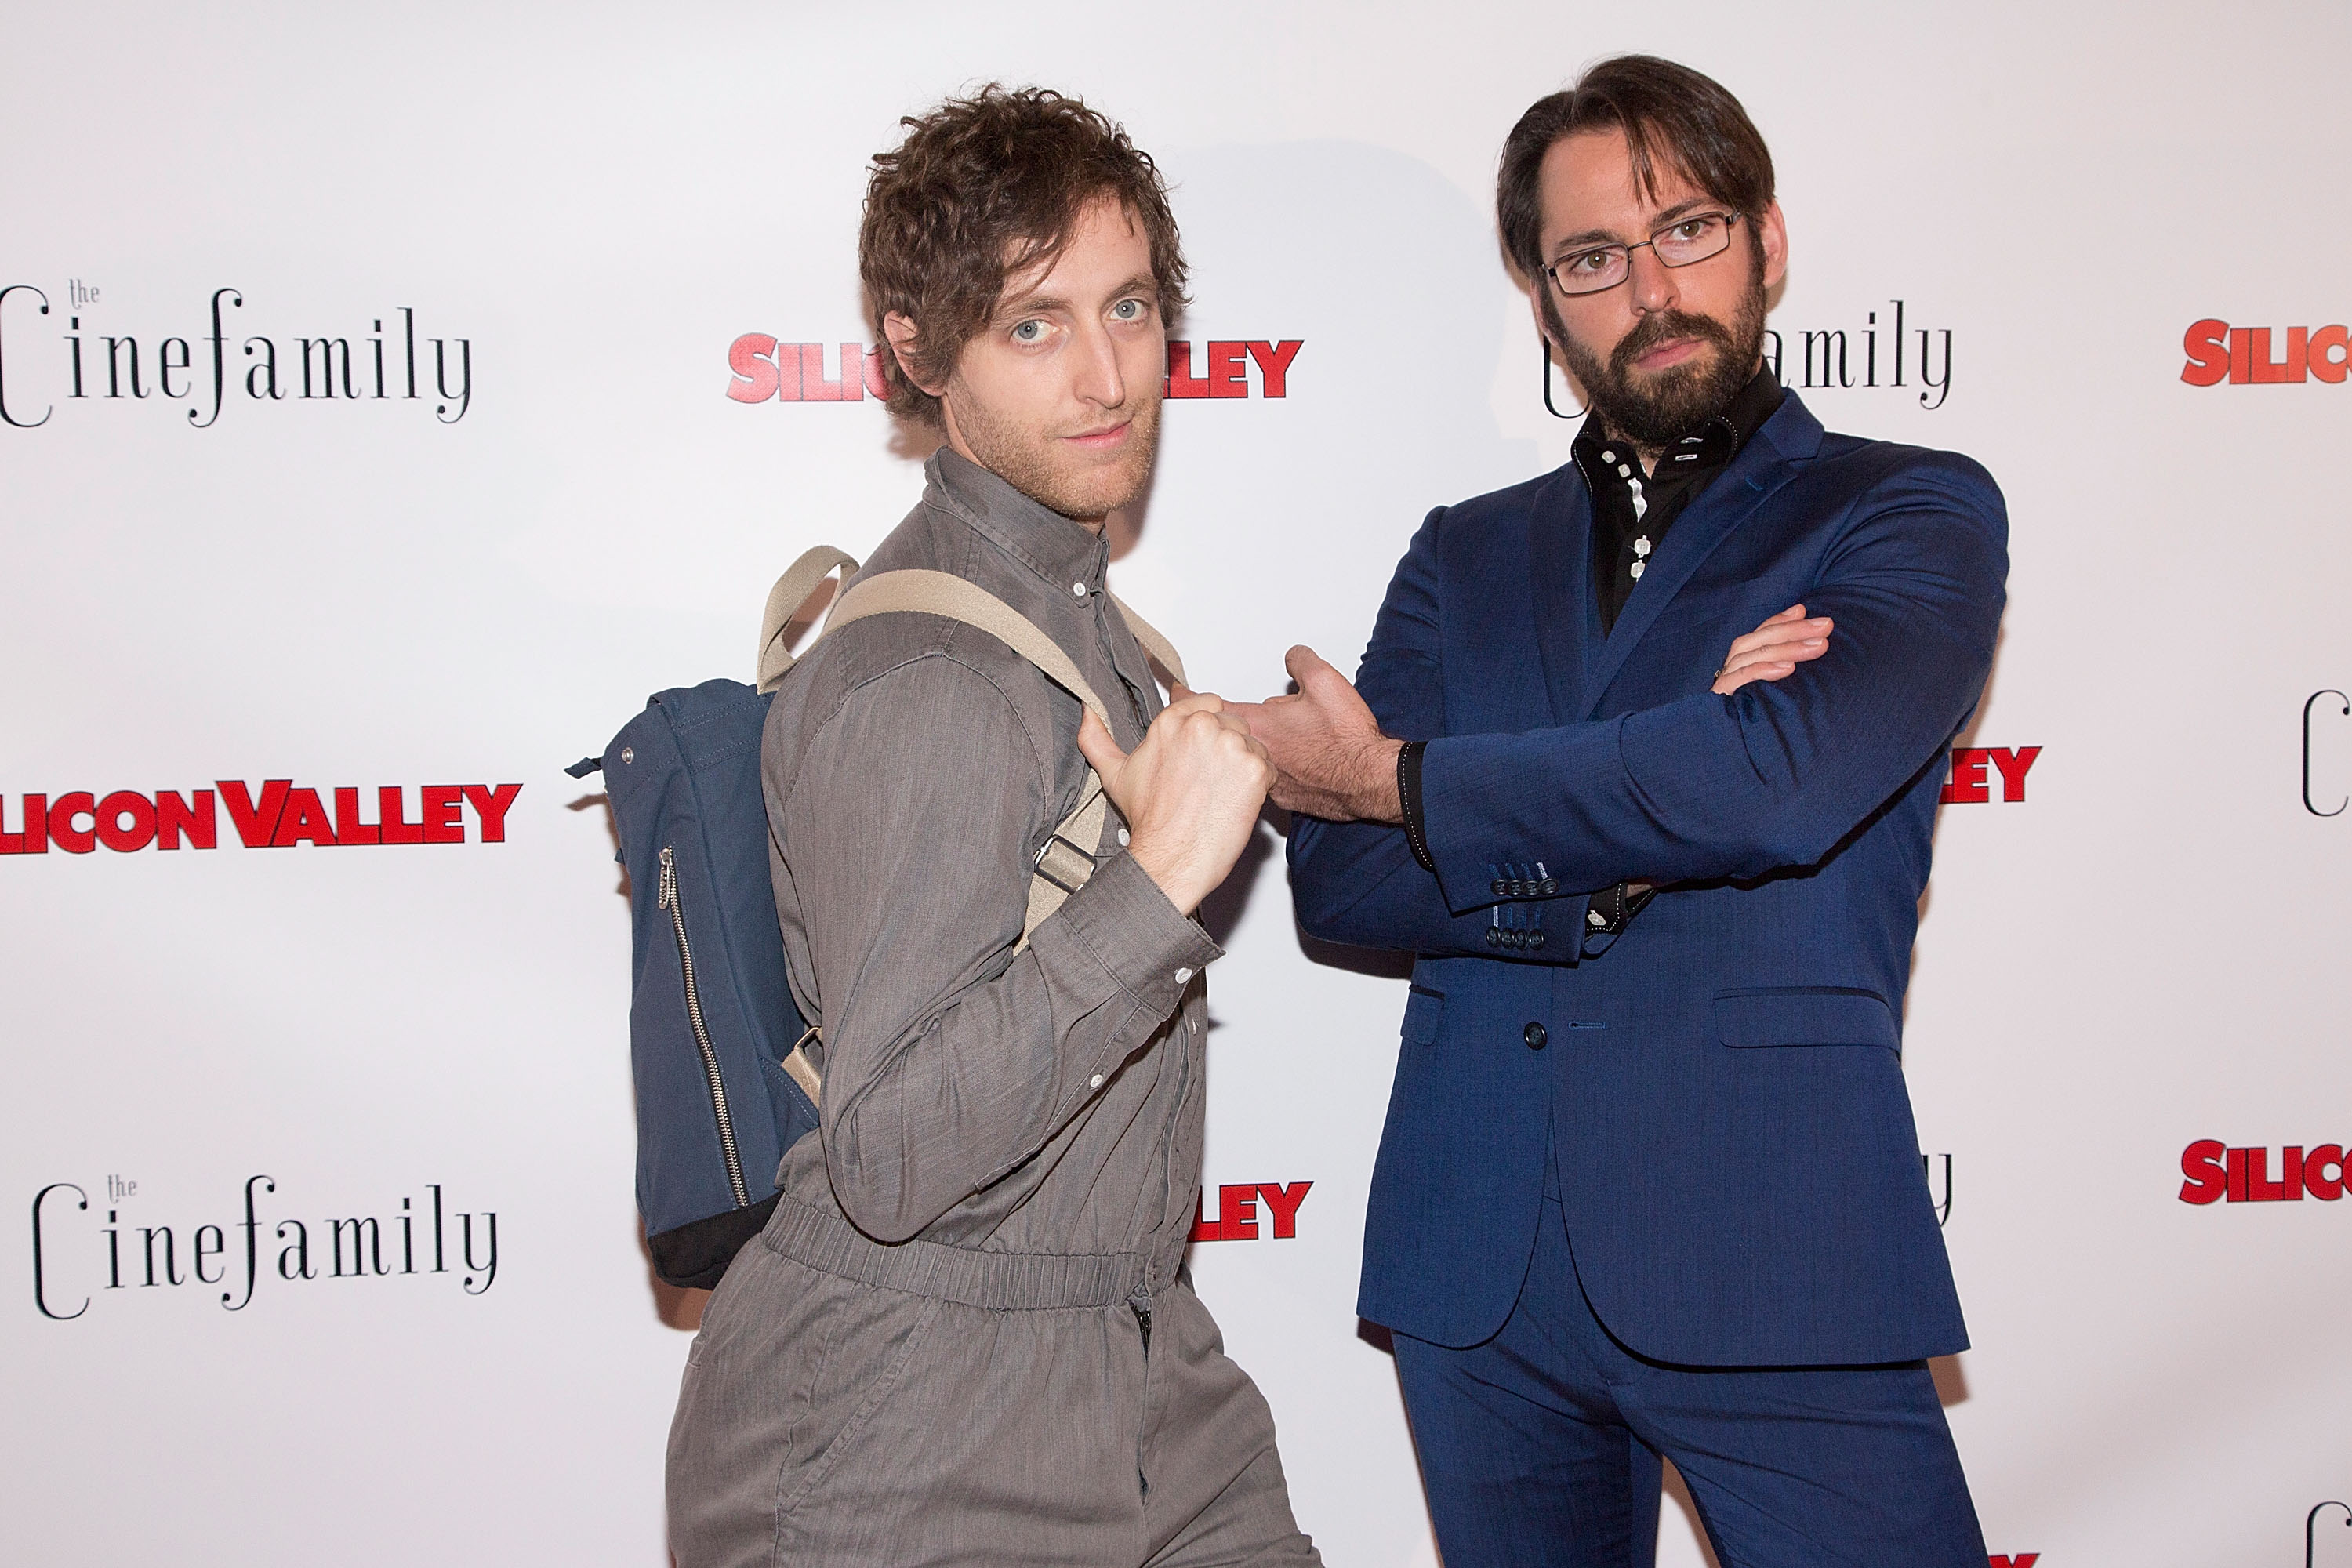 """Cinefamily Presents Scene Screening And Q&A For HBO's """"Silicon Valley"""" - Arrivals"""